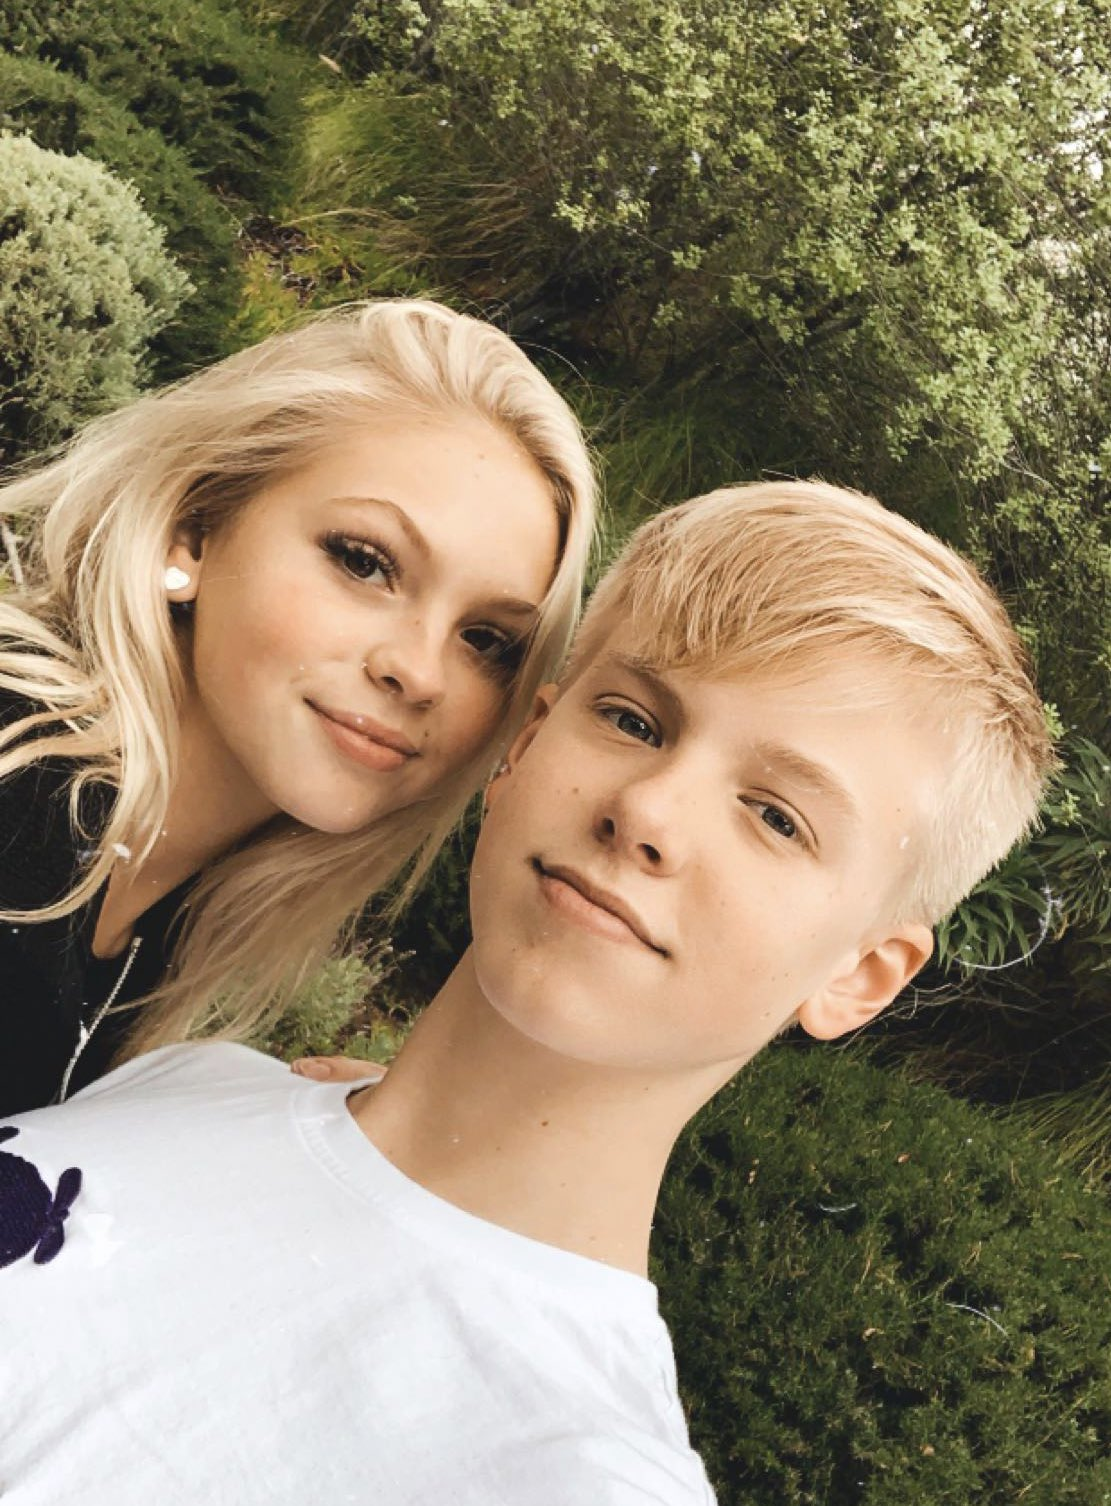 Girlfriend carson who is lueders How old